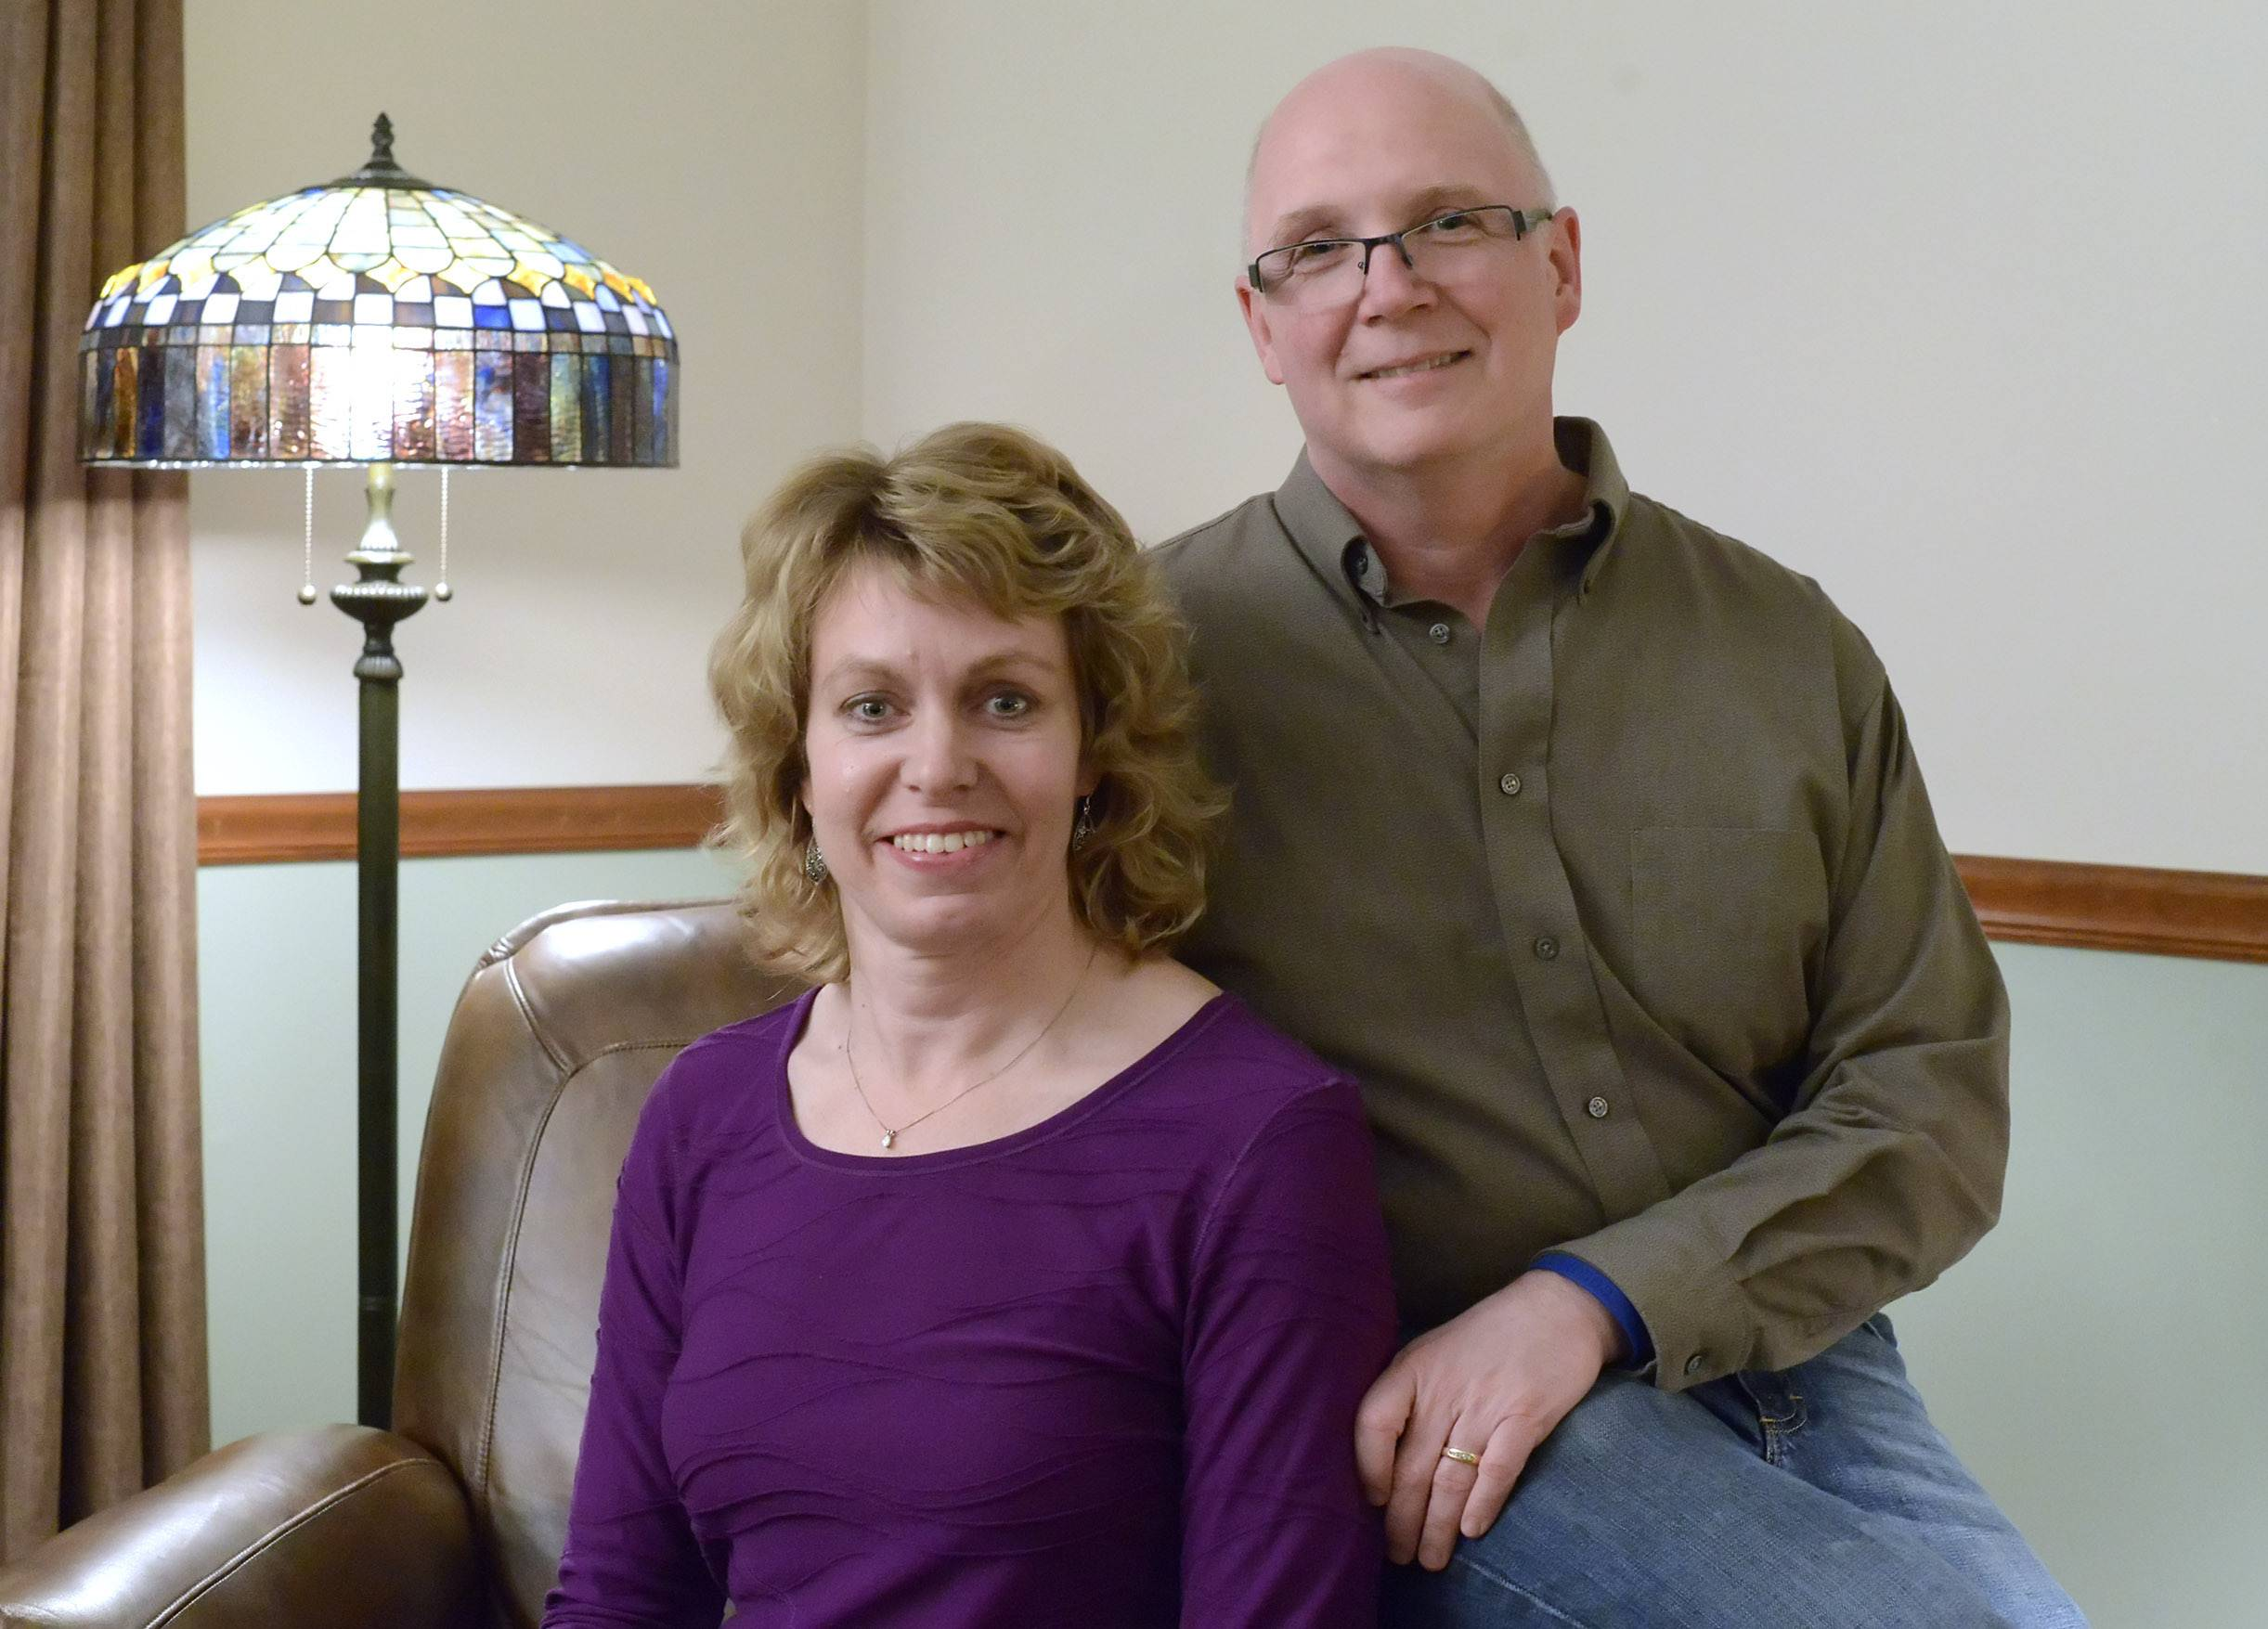 Bartlett residents Sharon and Devin Wells are organizing a 5K walk/race in Elgin on Aug. 2, on the anniversary to heighten awareness of colon cancer, which Sharon is beating.